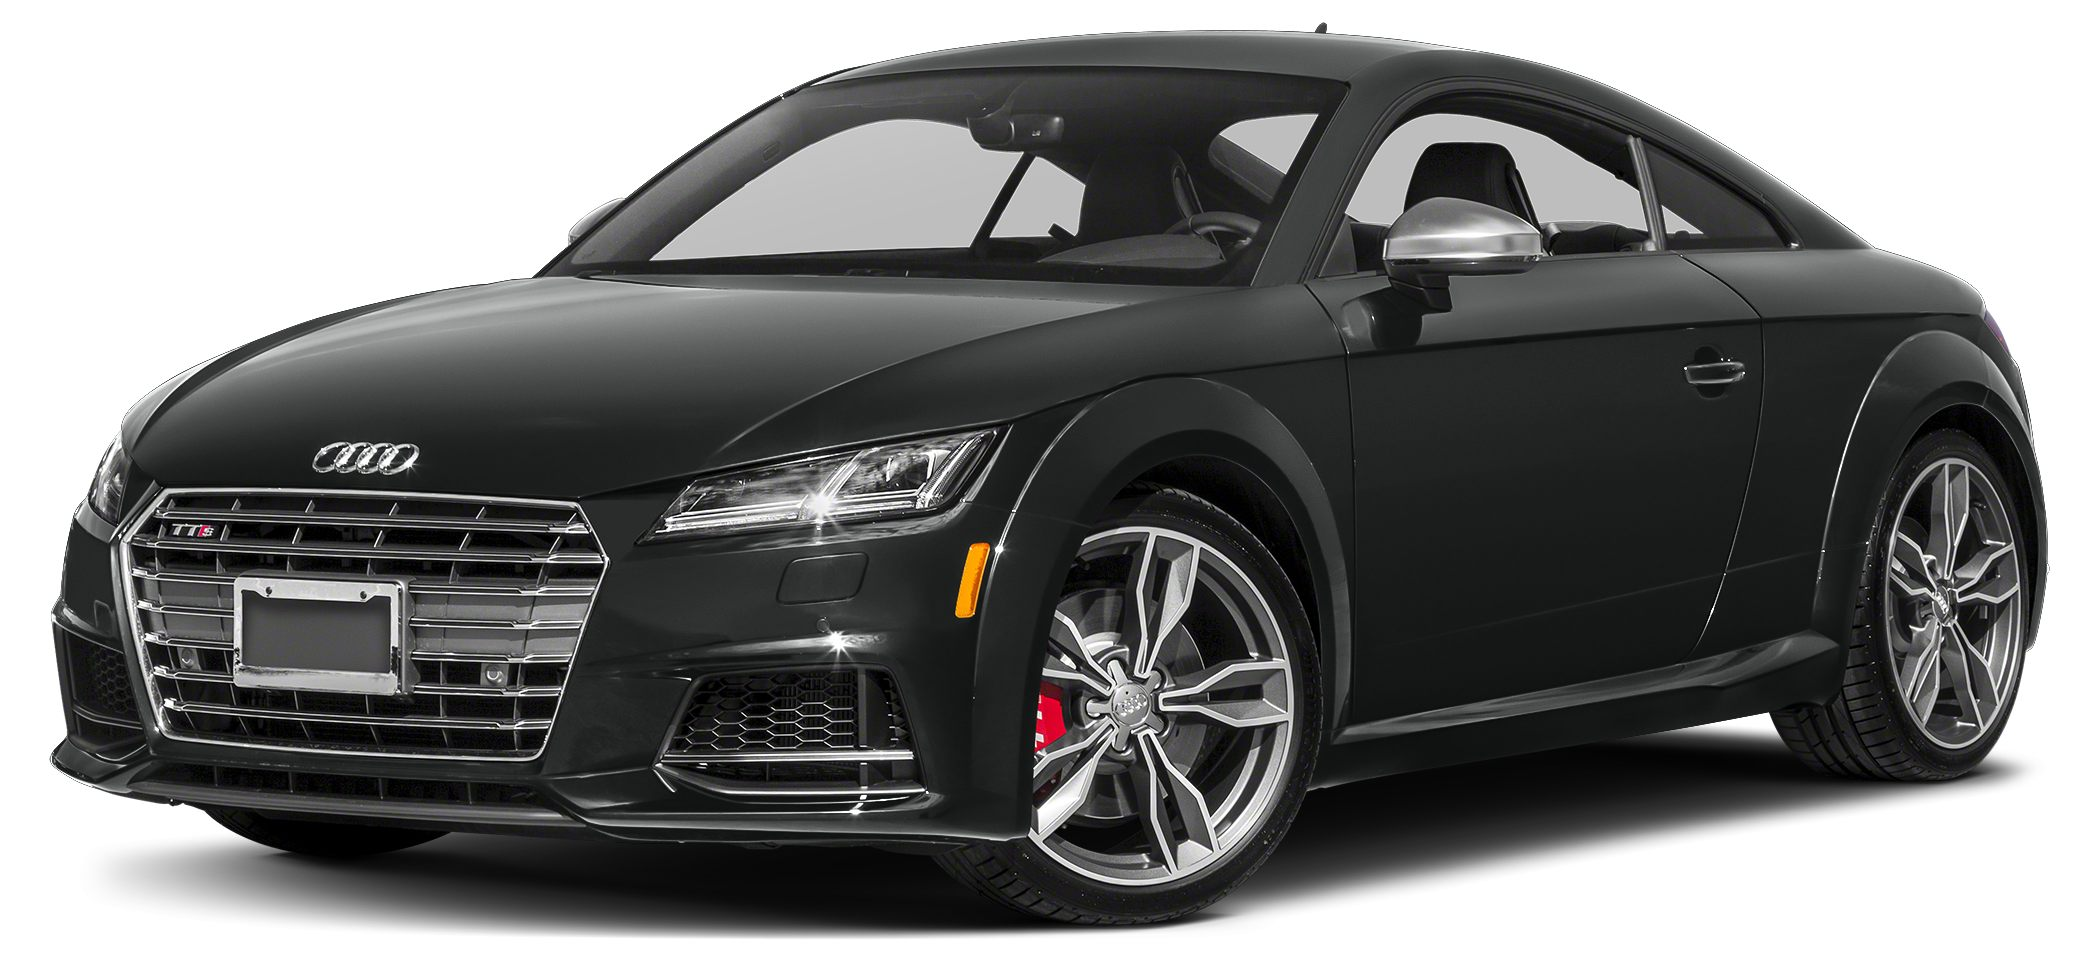 2018 Audi TTS 20T quattro Optional equipment includes Technology Package Black Optic Package S